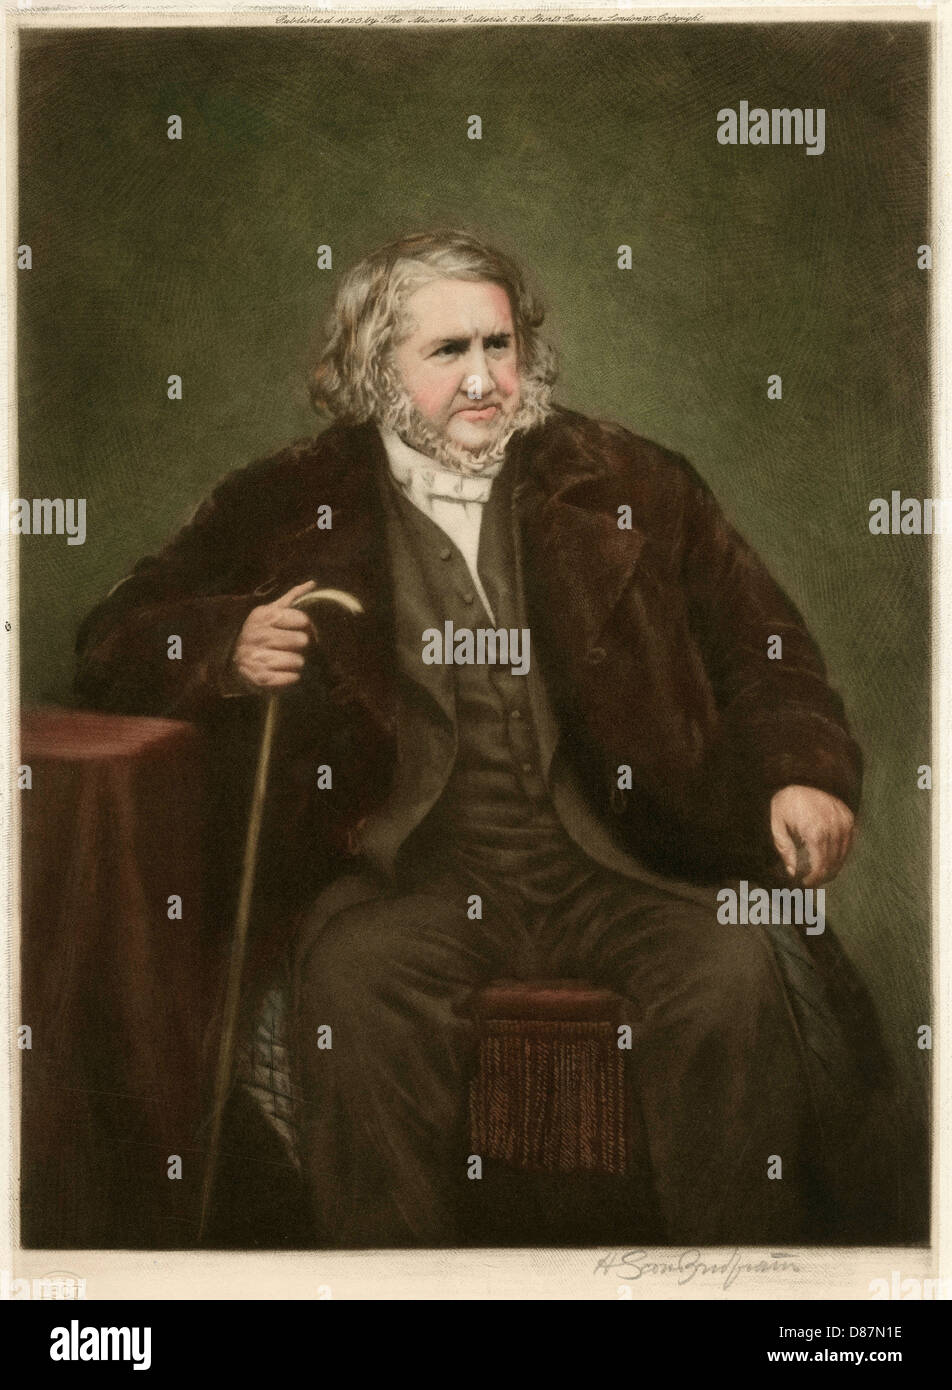 James Young Simpson - Stock Image